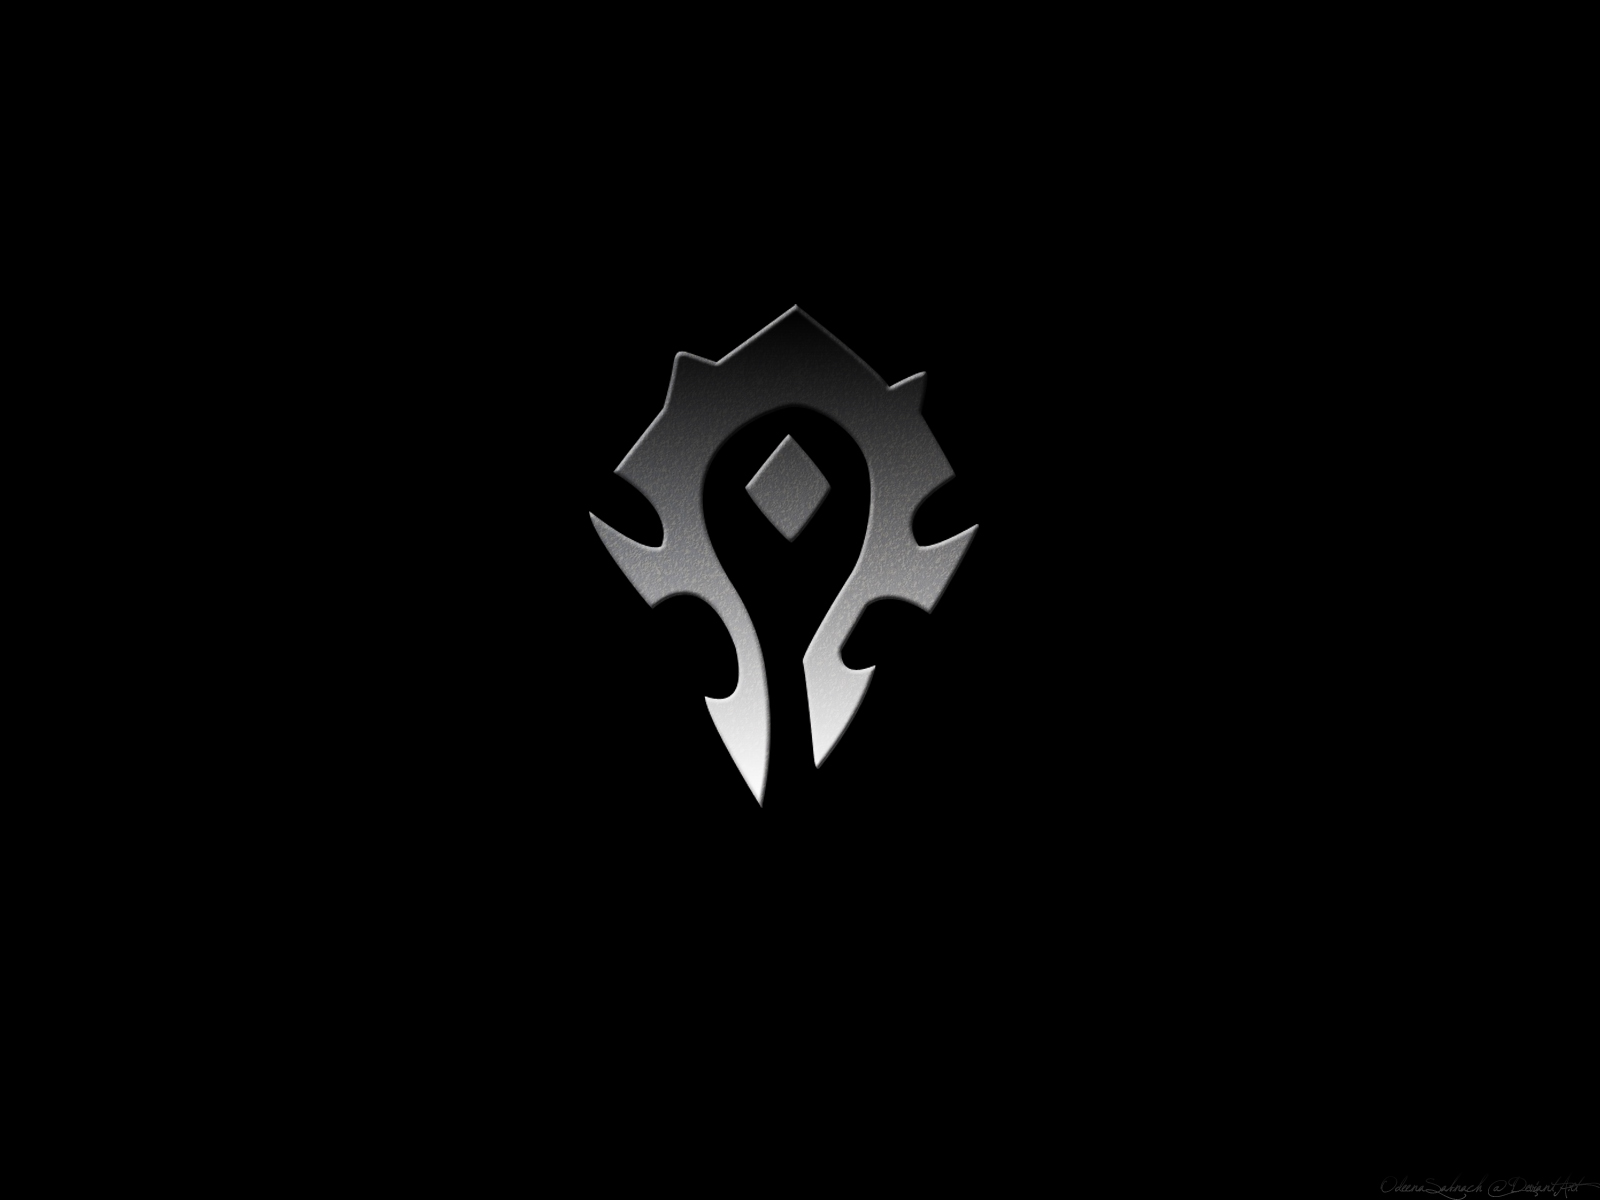 Free Download Wow Horde Logo Png Warcraft For The Horde By